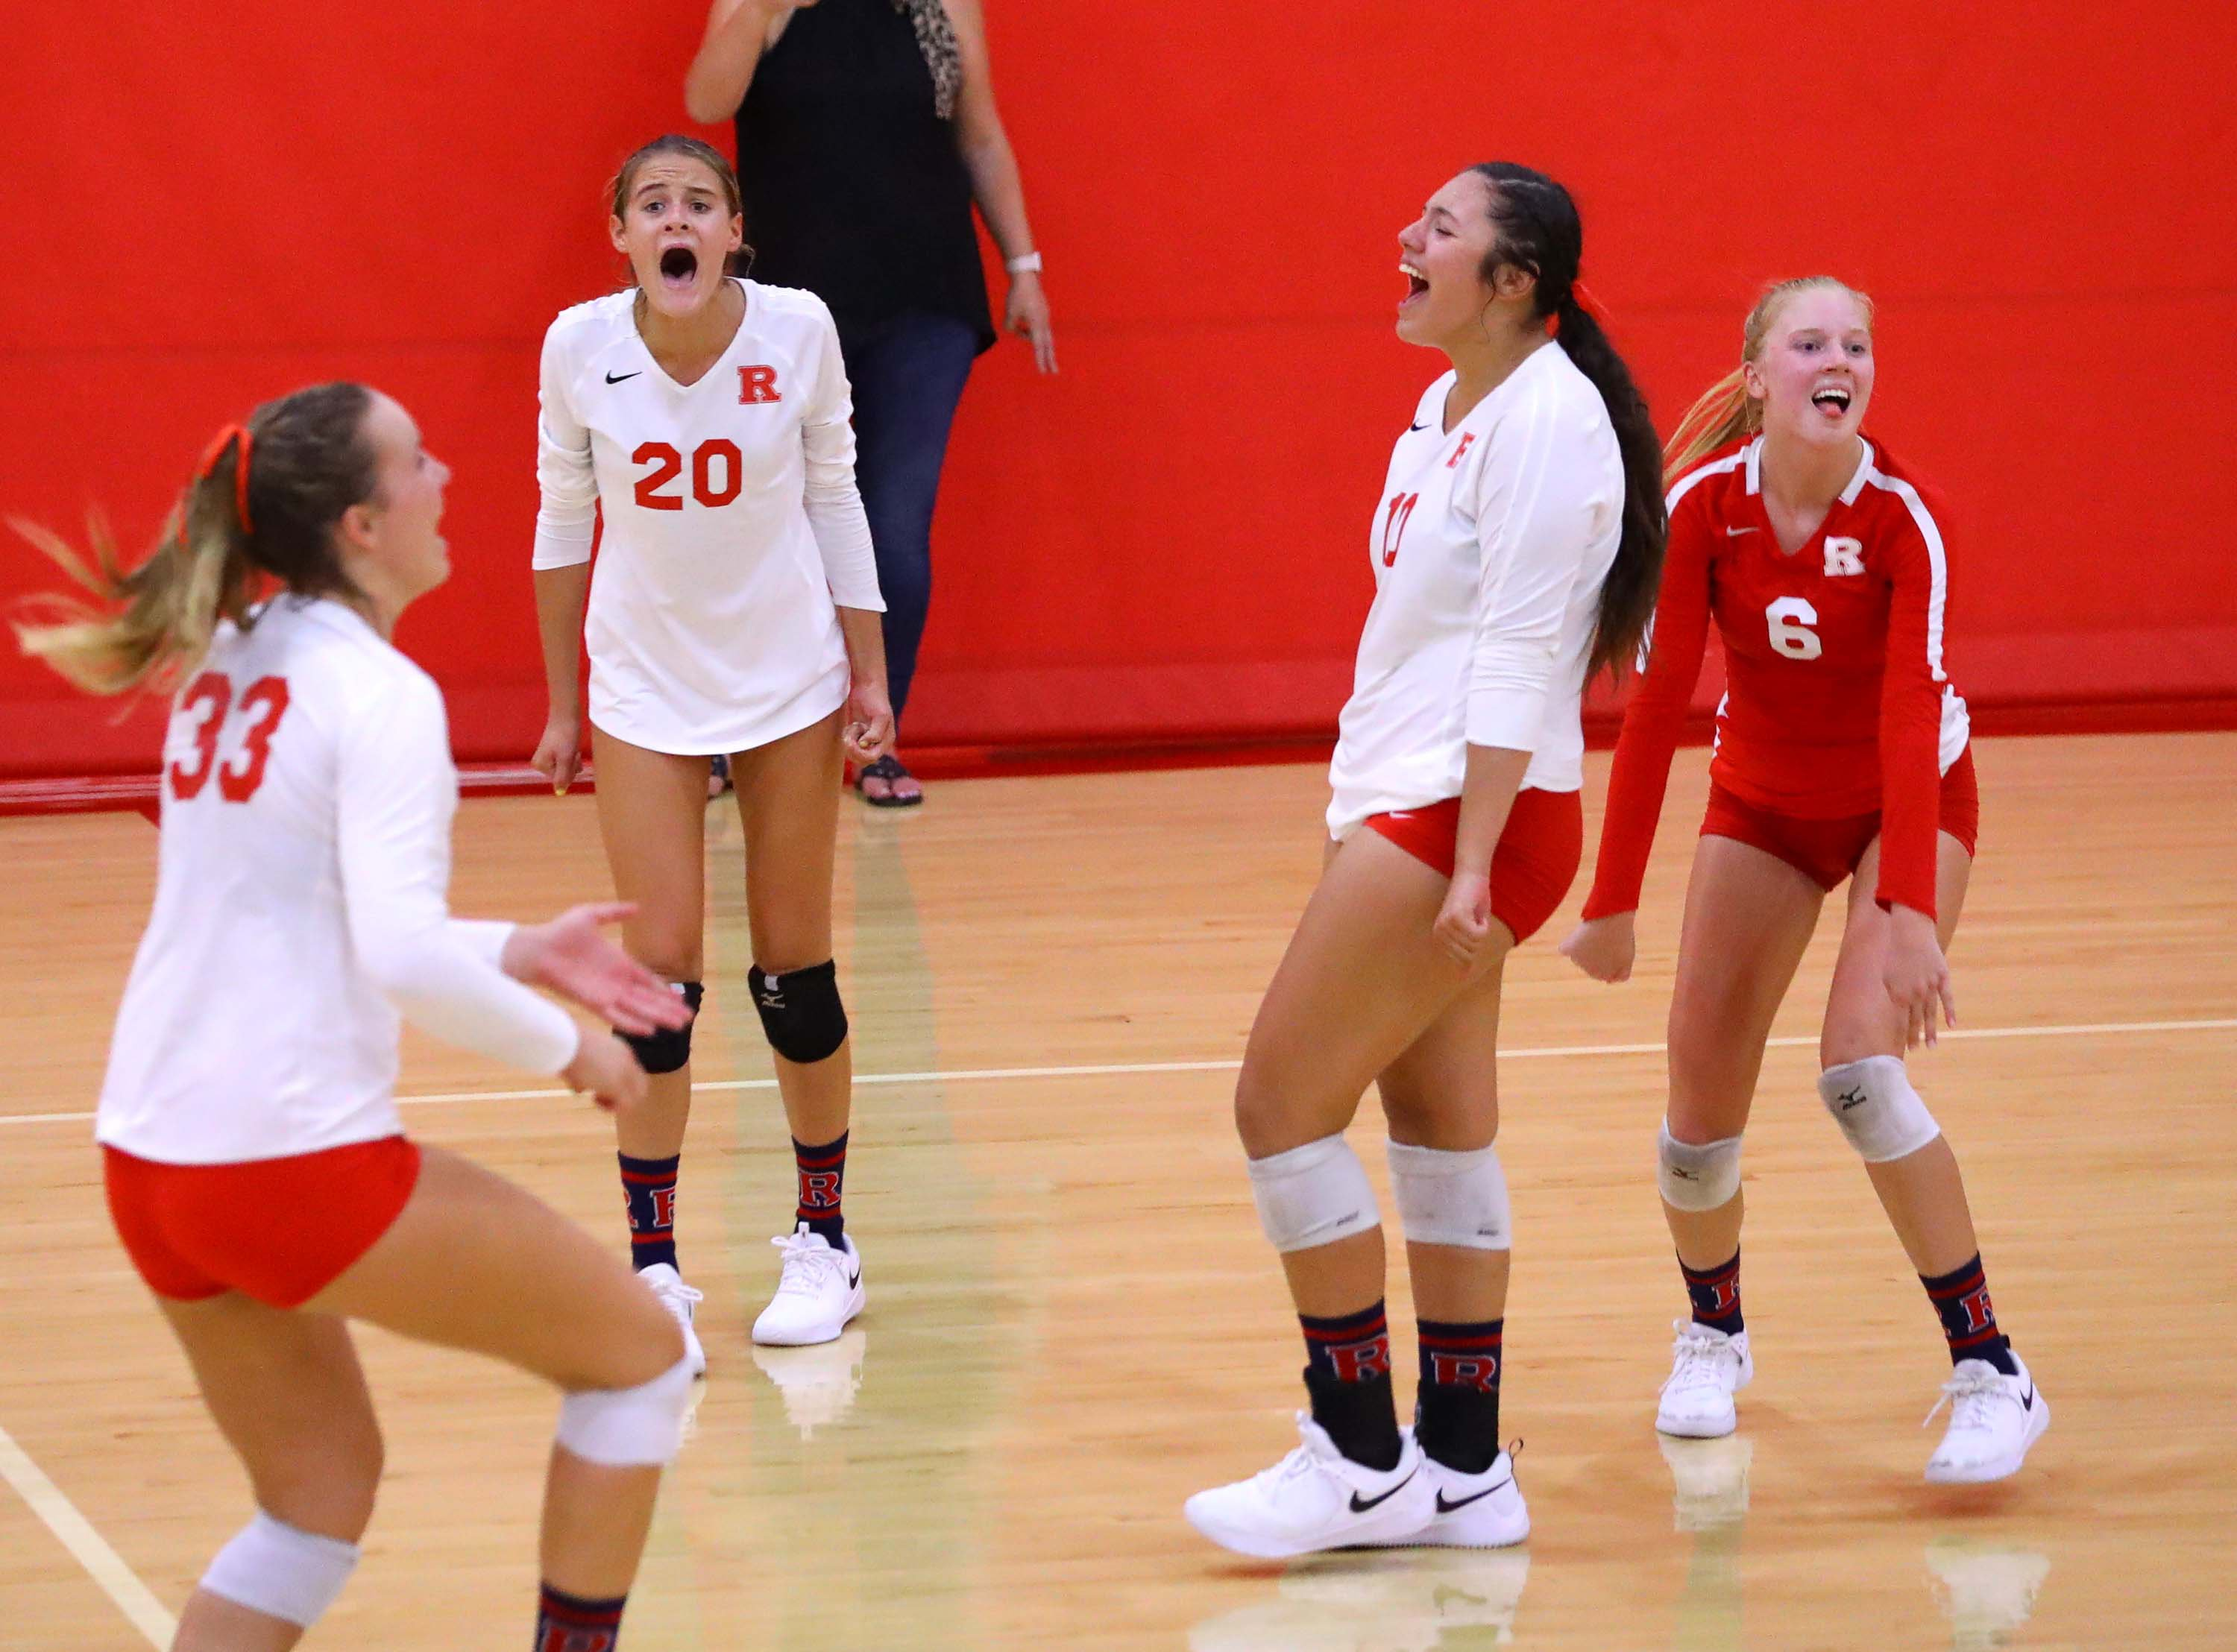 Redondo Union celebrates during its five-set, come-from-behind victory last week over Mater Dei.